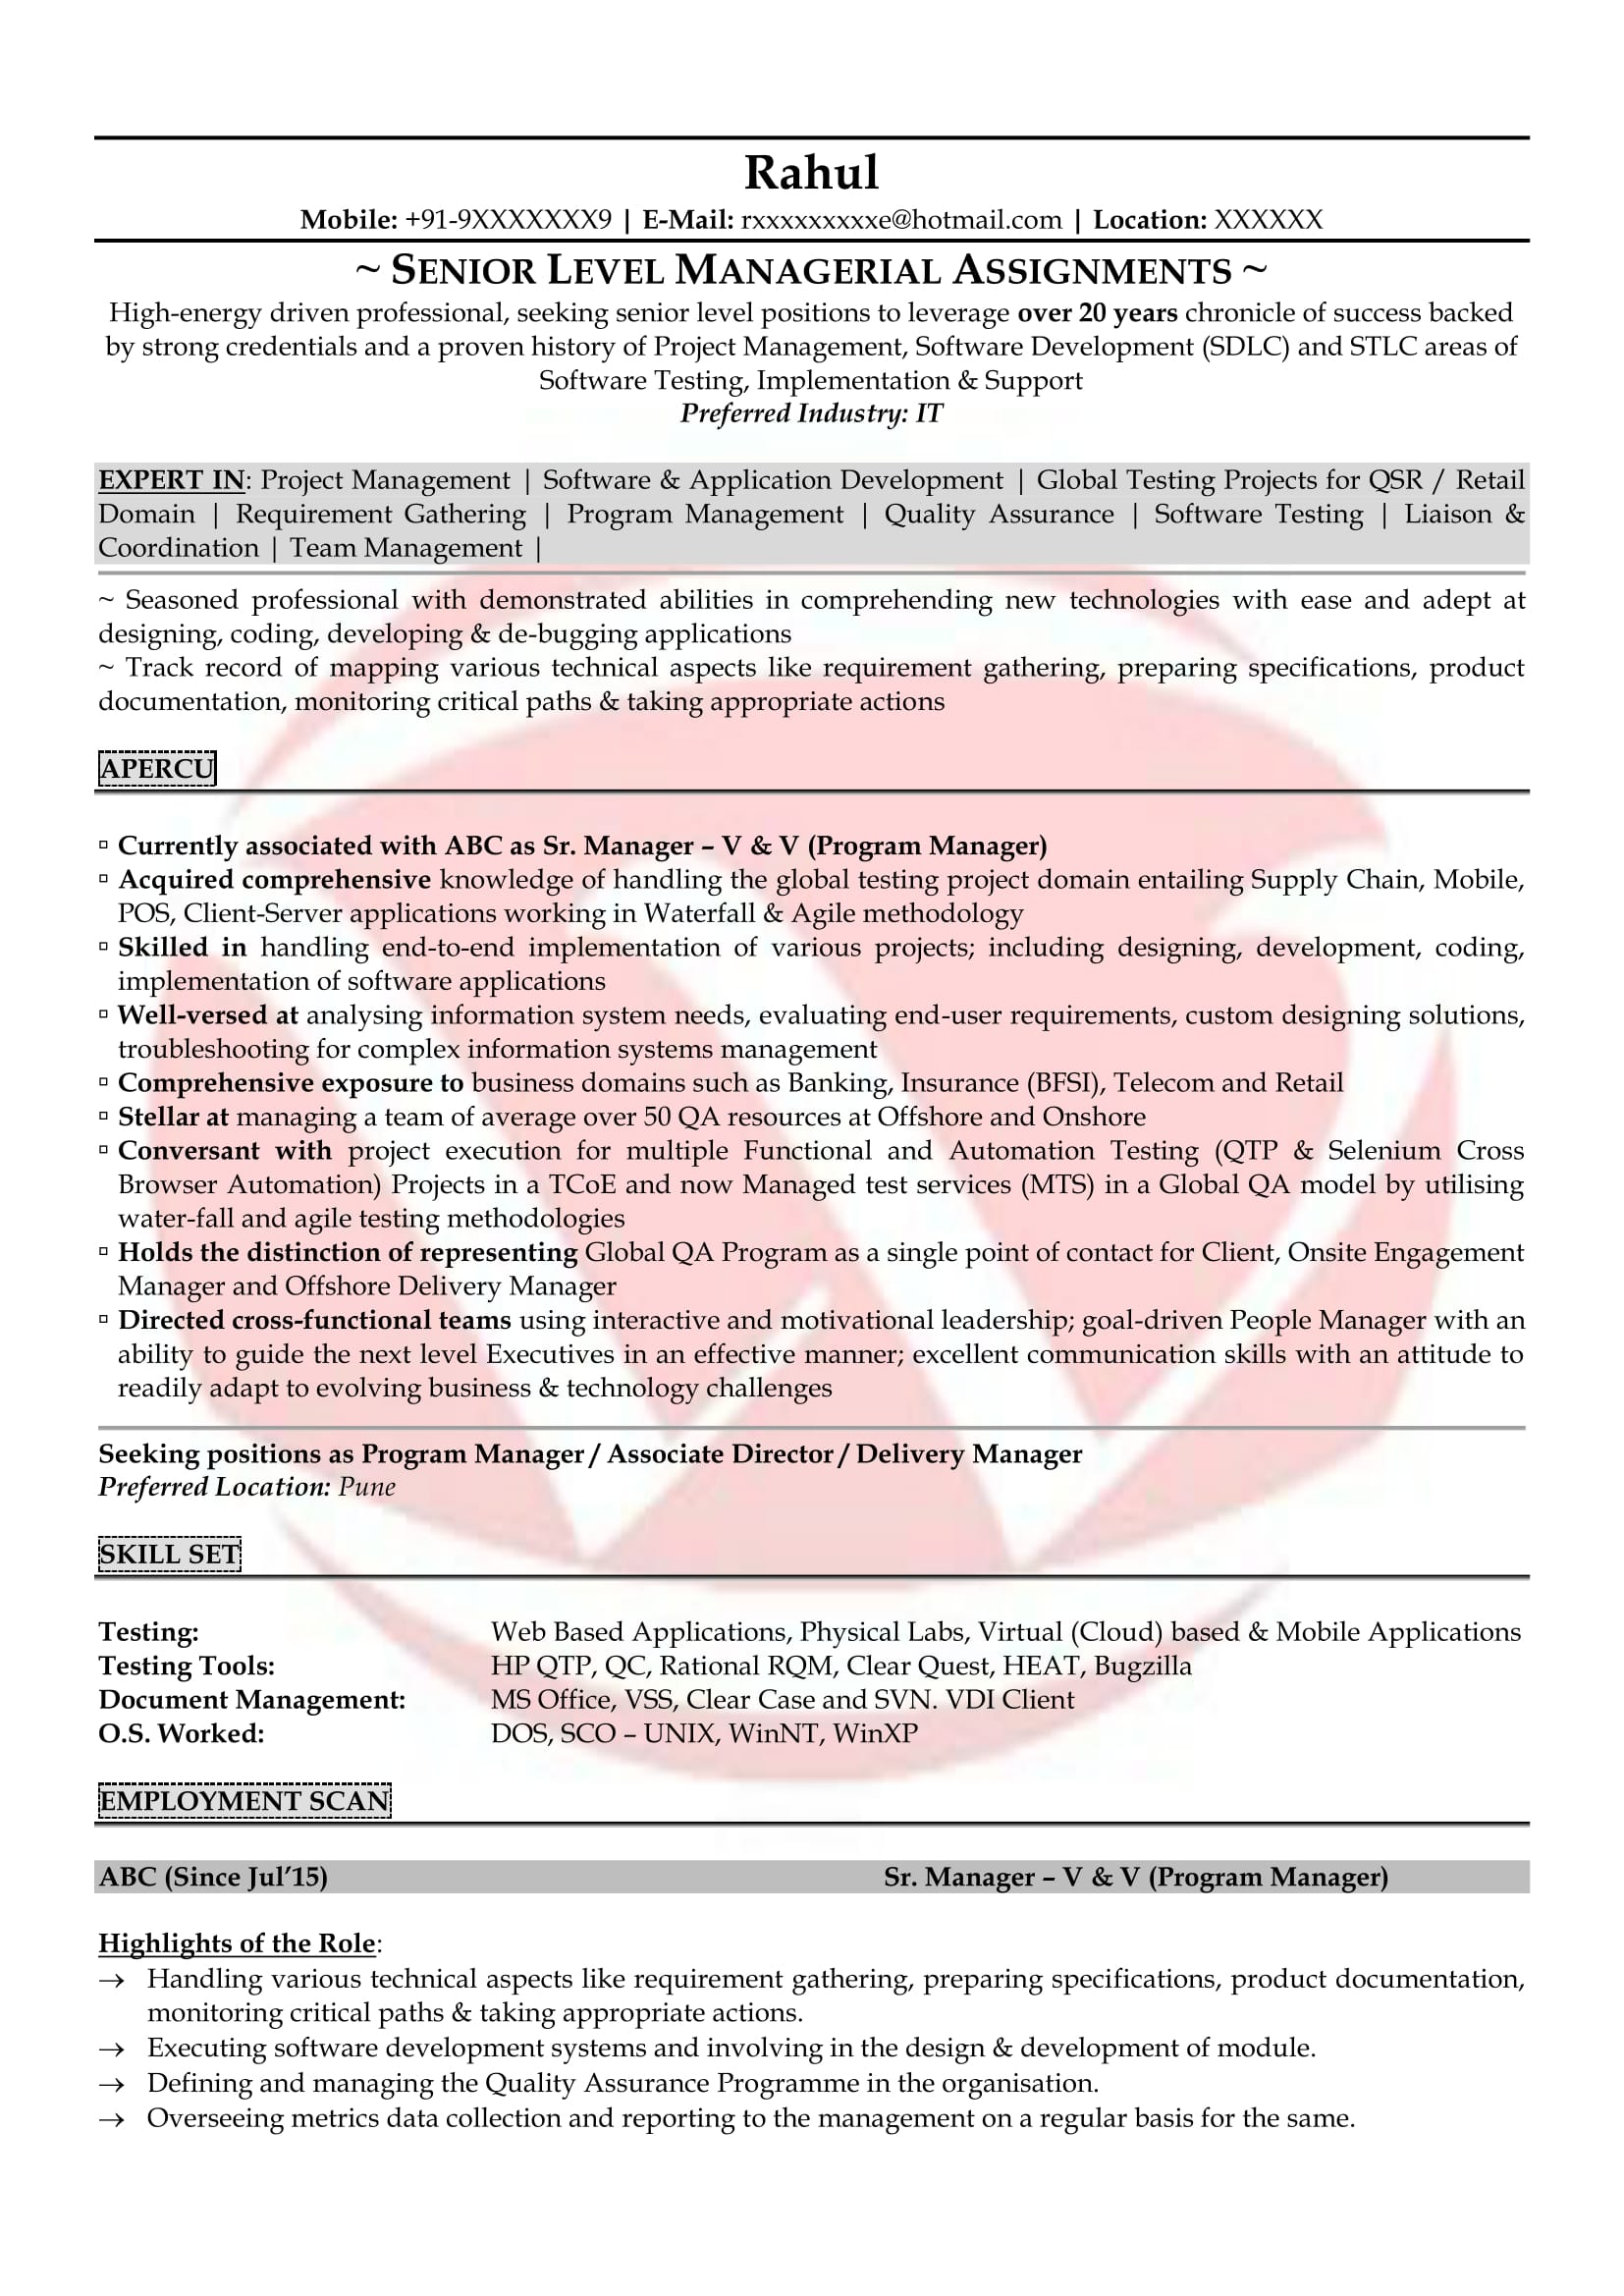 Software Testing Sample Resume  Software Testing Resume